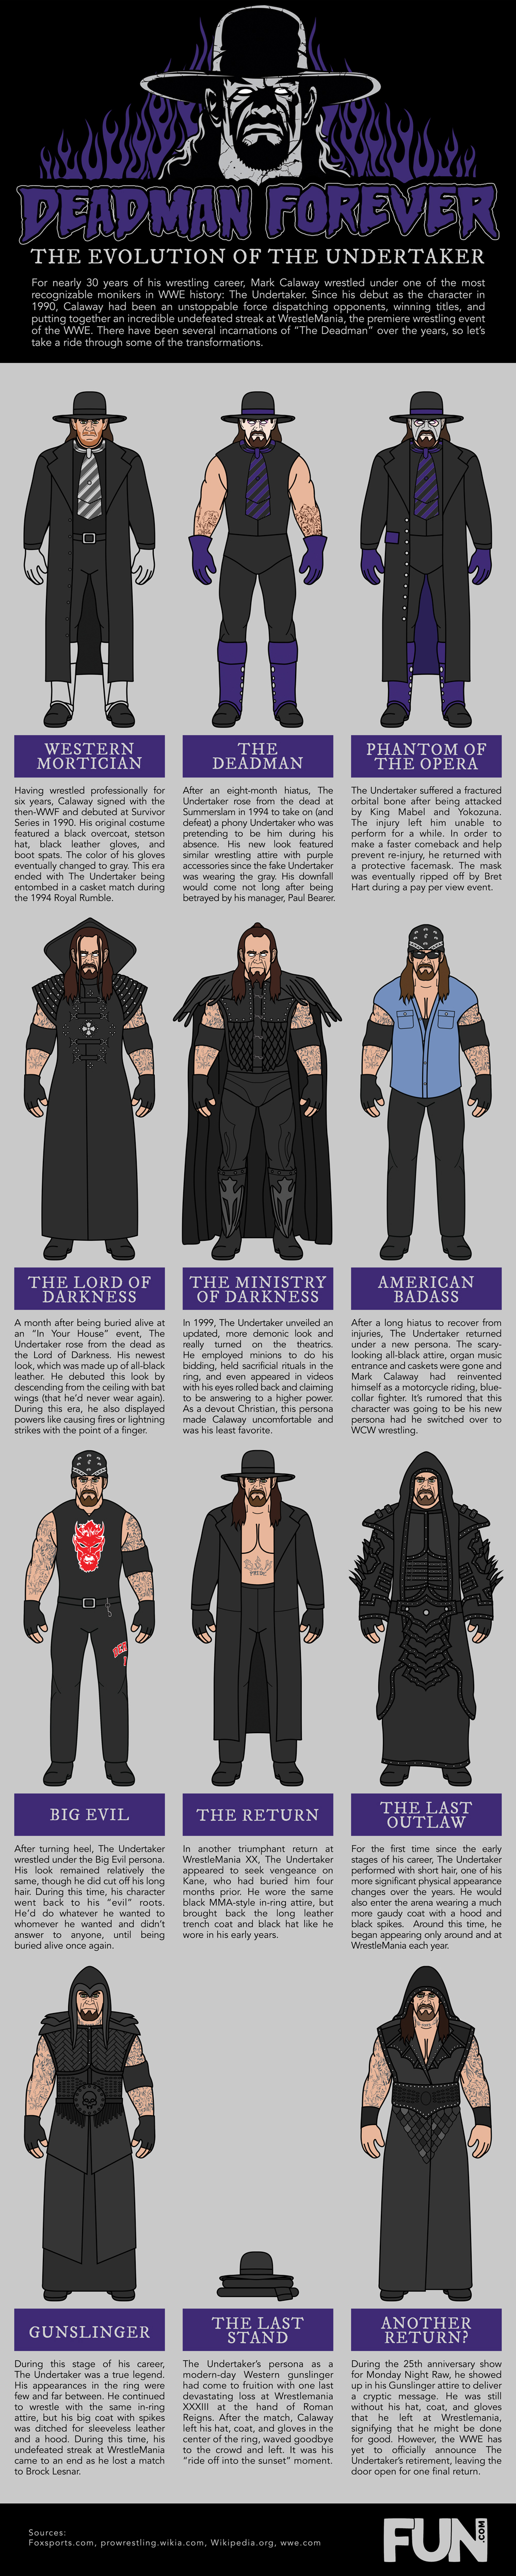 Evolution of the Undertaker Infographic